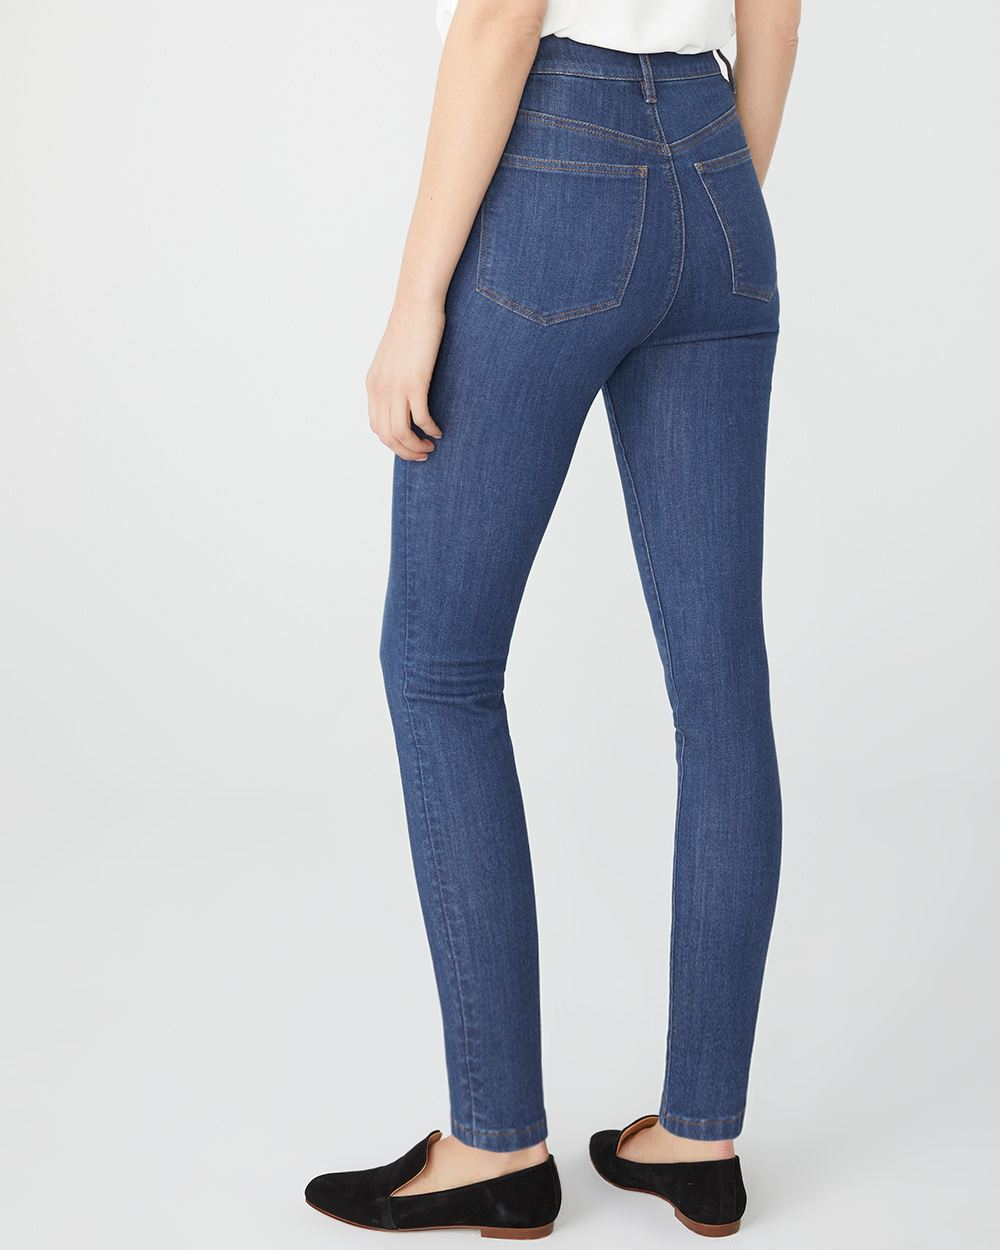 Ultra high-waist Sculpting skinny jeans in medium wash